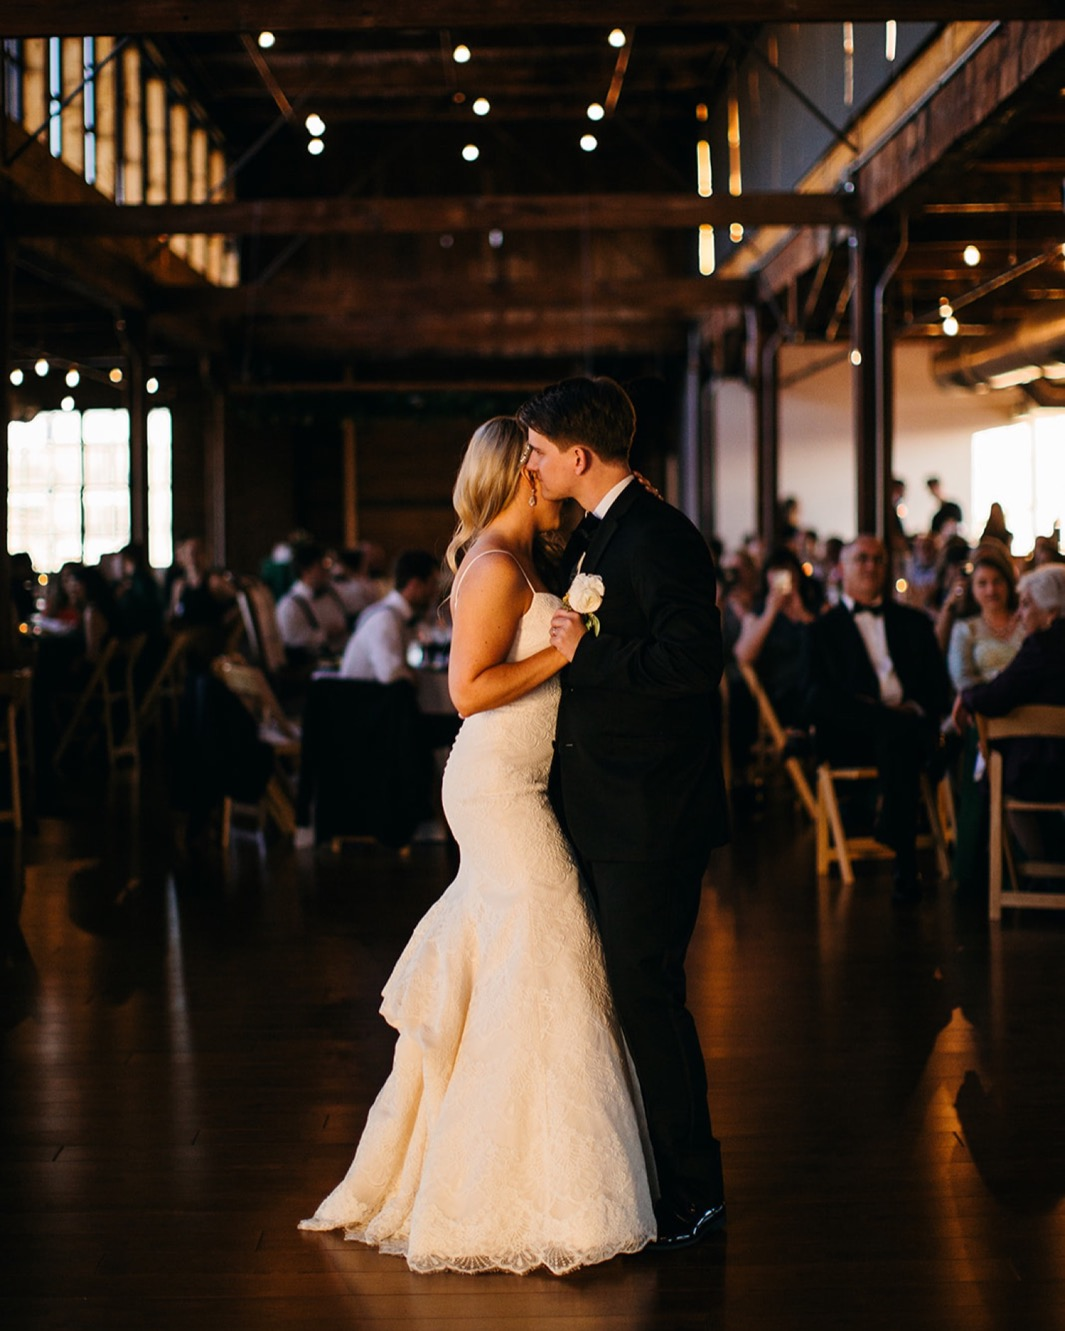 Bride and groom hold eachother close during their first dance at their wedding in the Turnbull building.